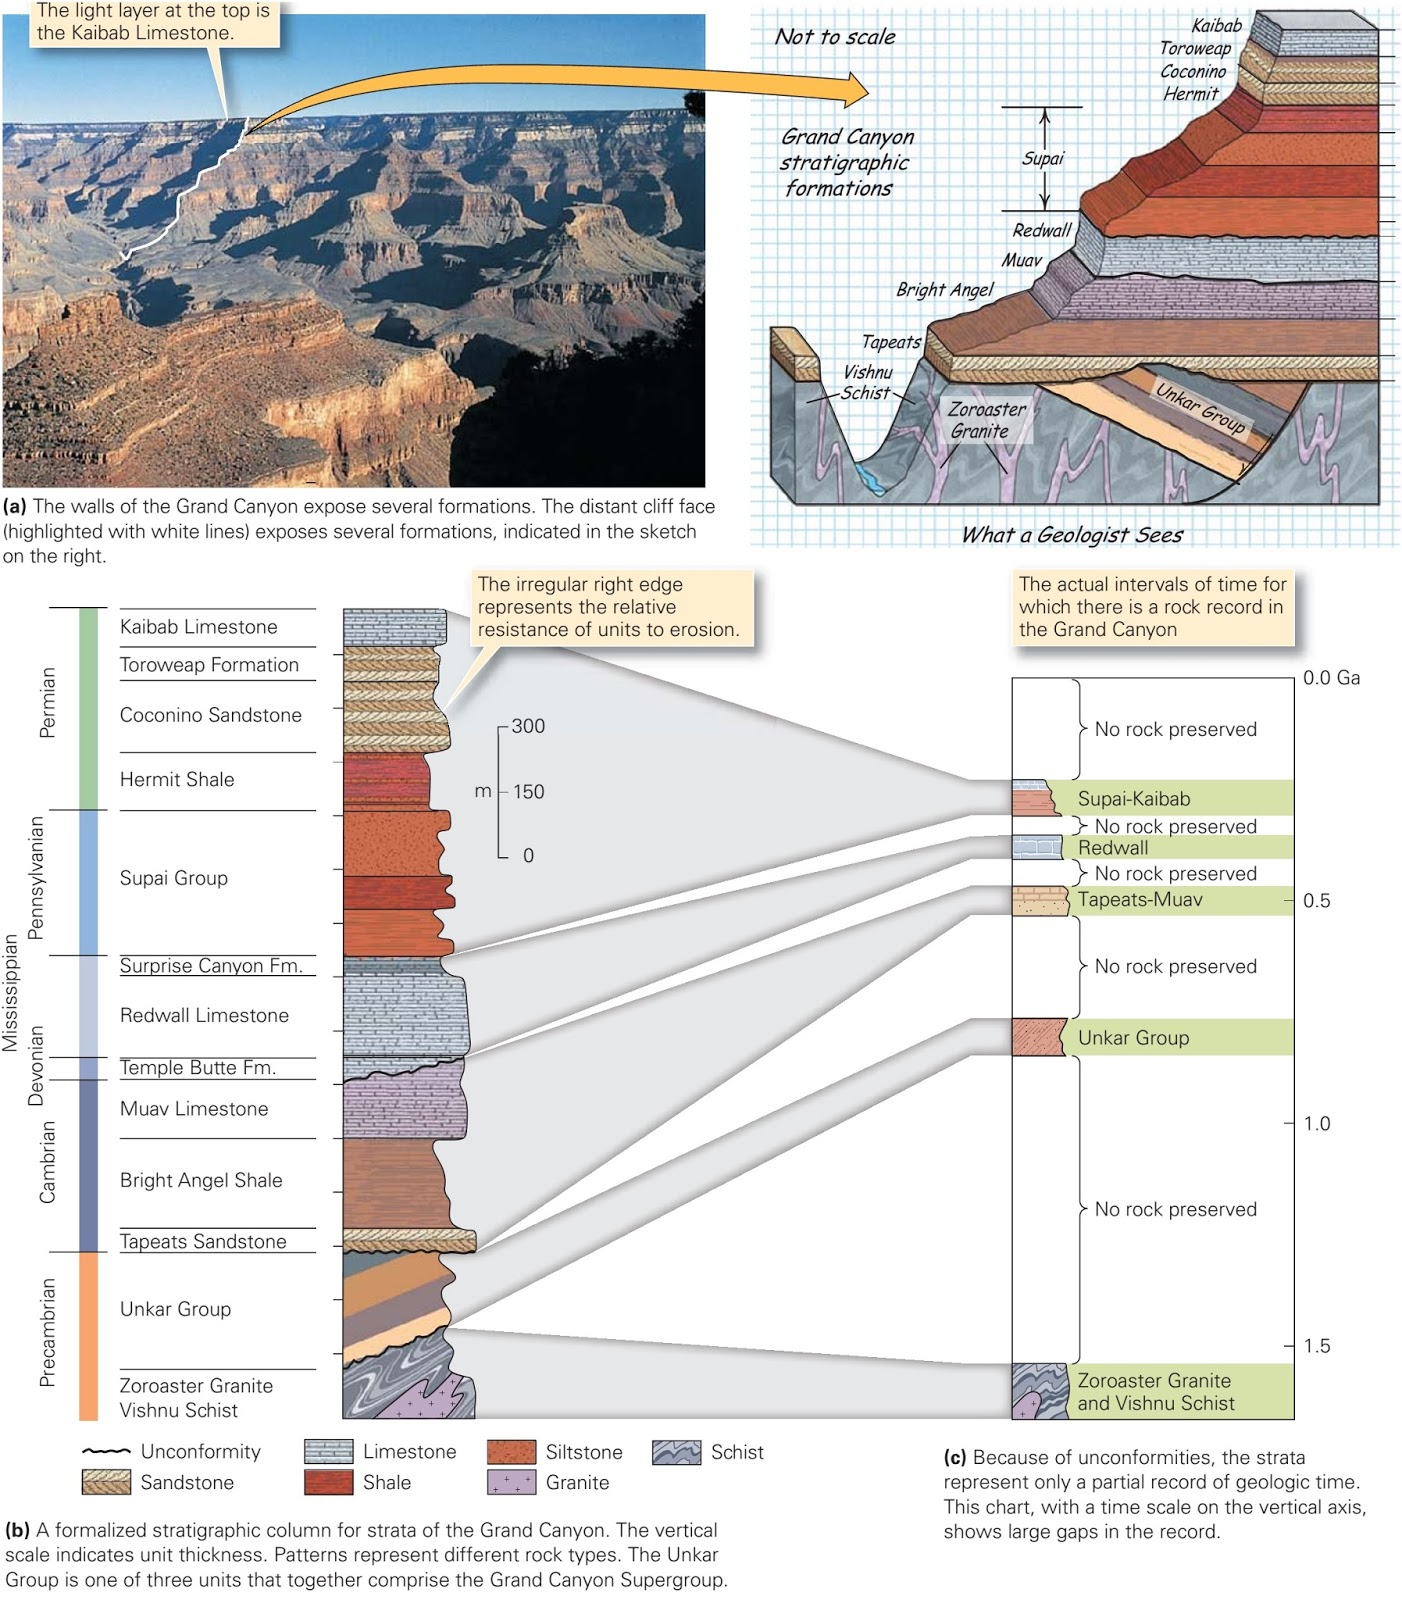 the stratigraphic formations and stratigraphic column for the grand canyon in arizona  [ 1402 x 1600 Pixel ]